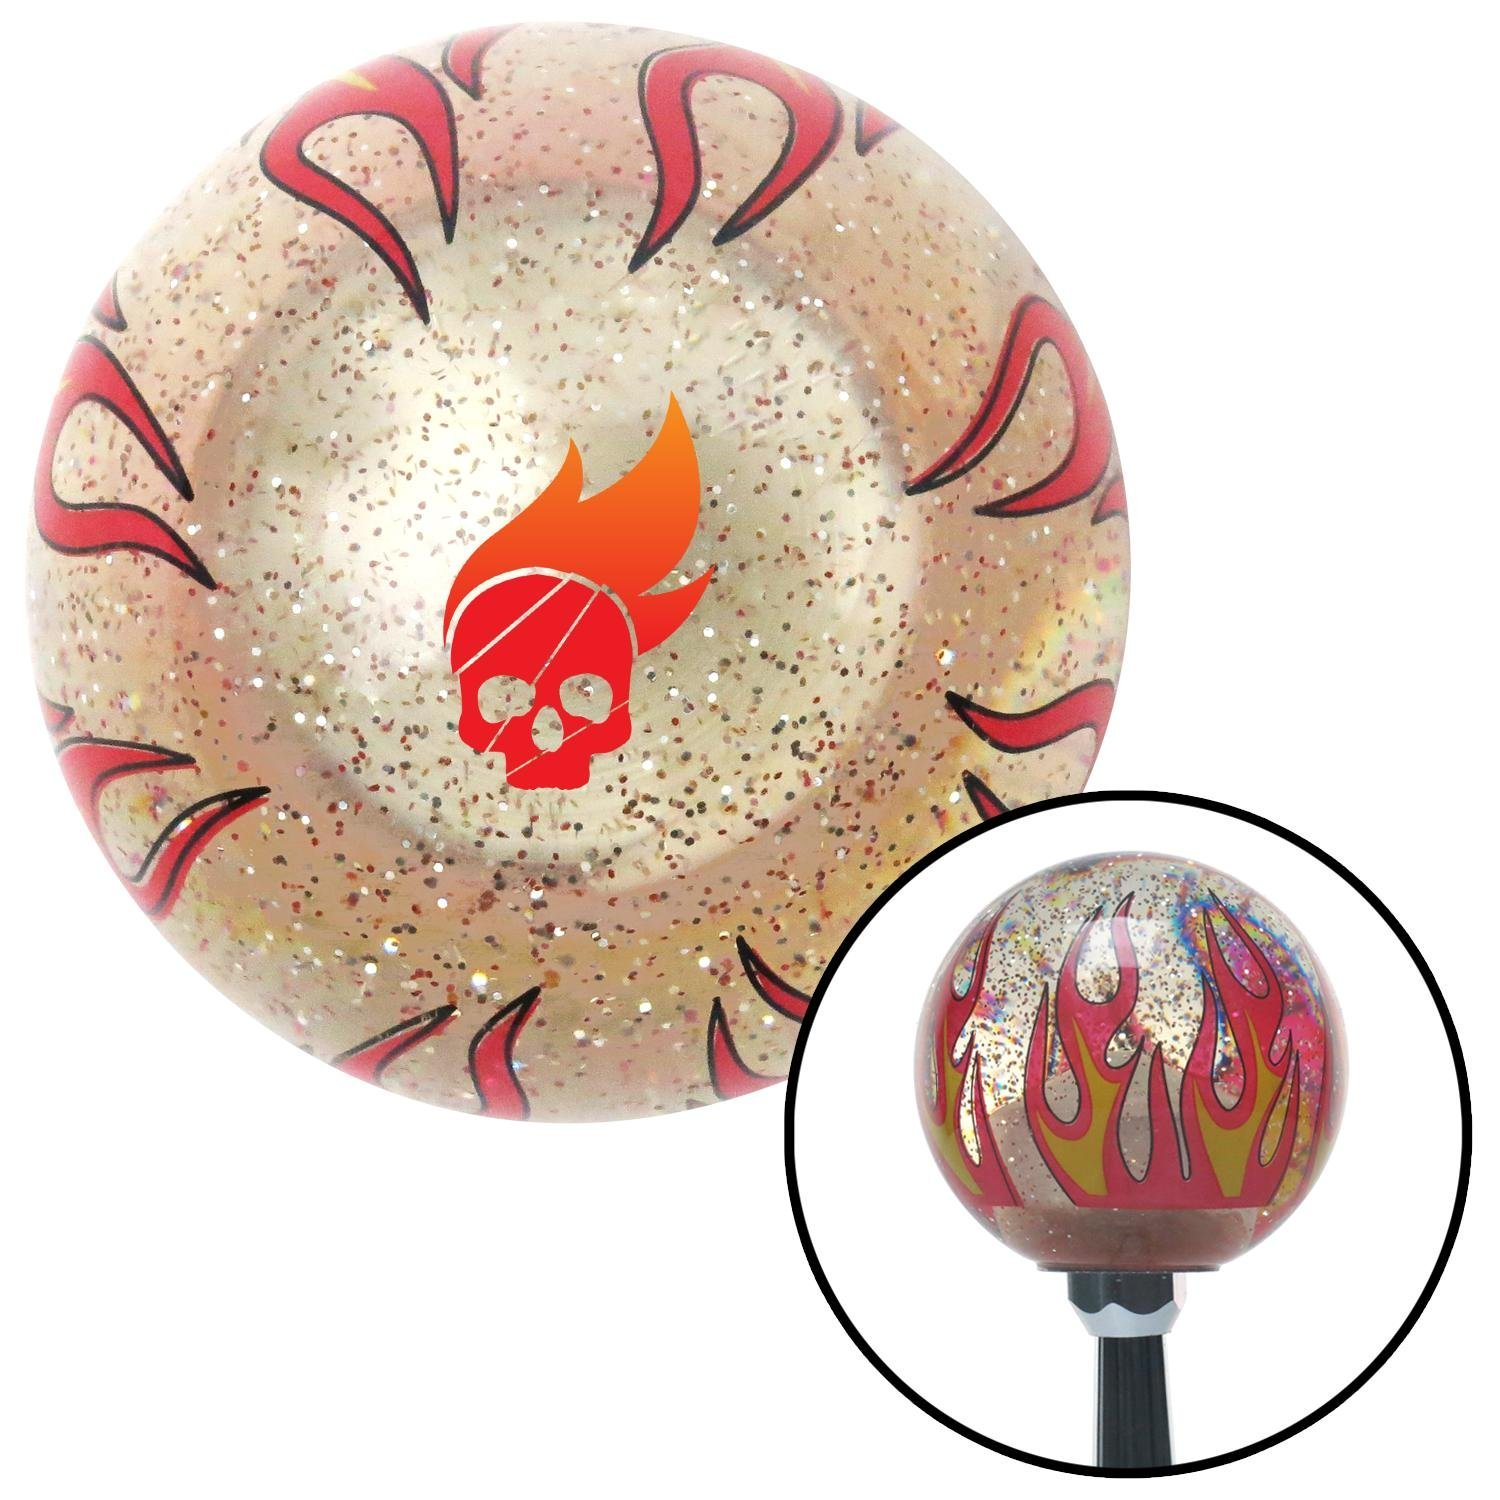 American Shifter 296112 Shift Knob Skull Flame in Color Clear Flame Metal Flake with M16 x 1.5 Insert